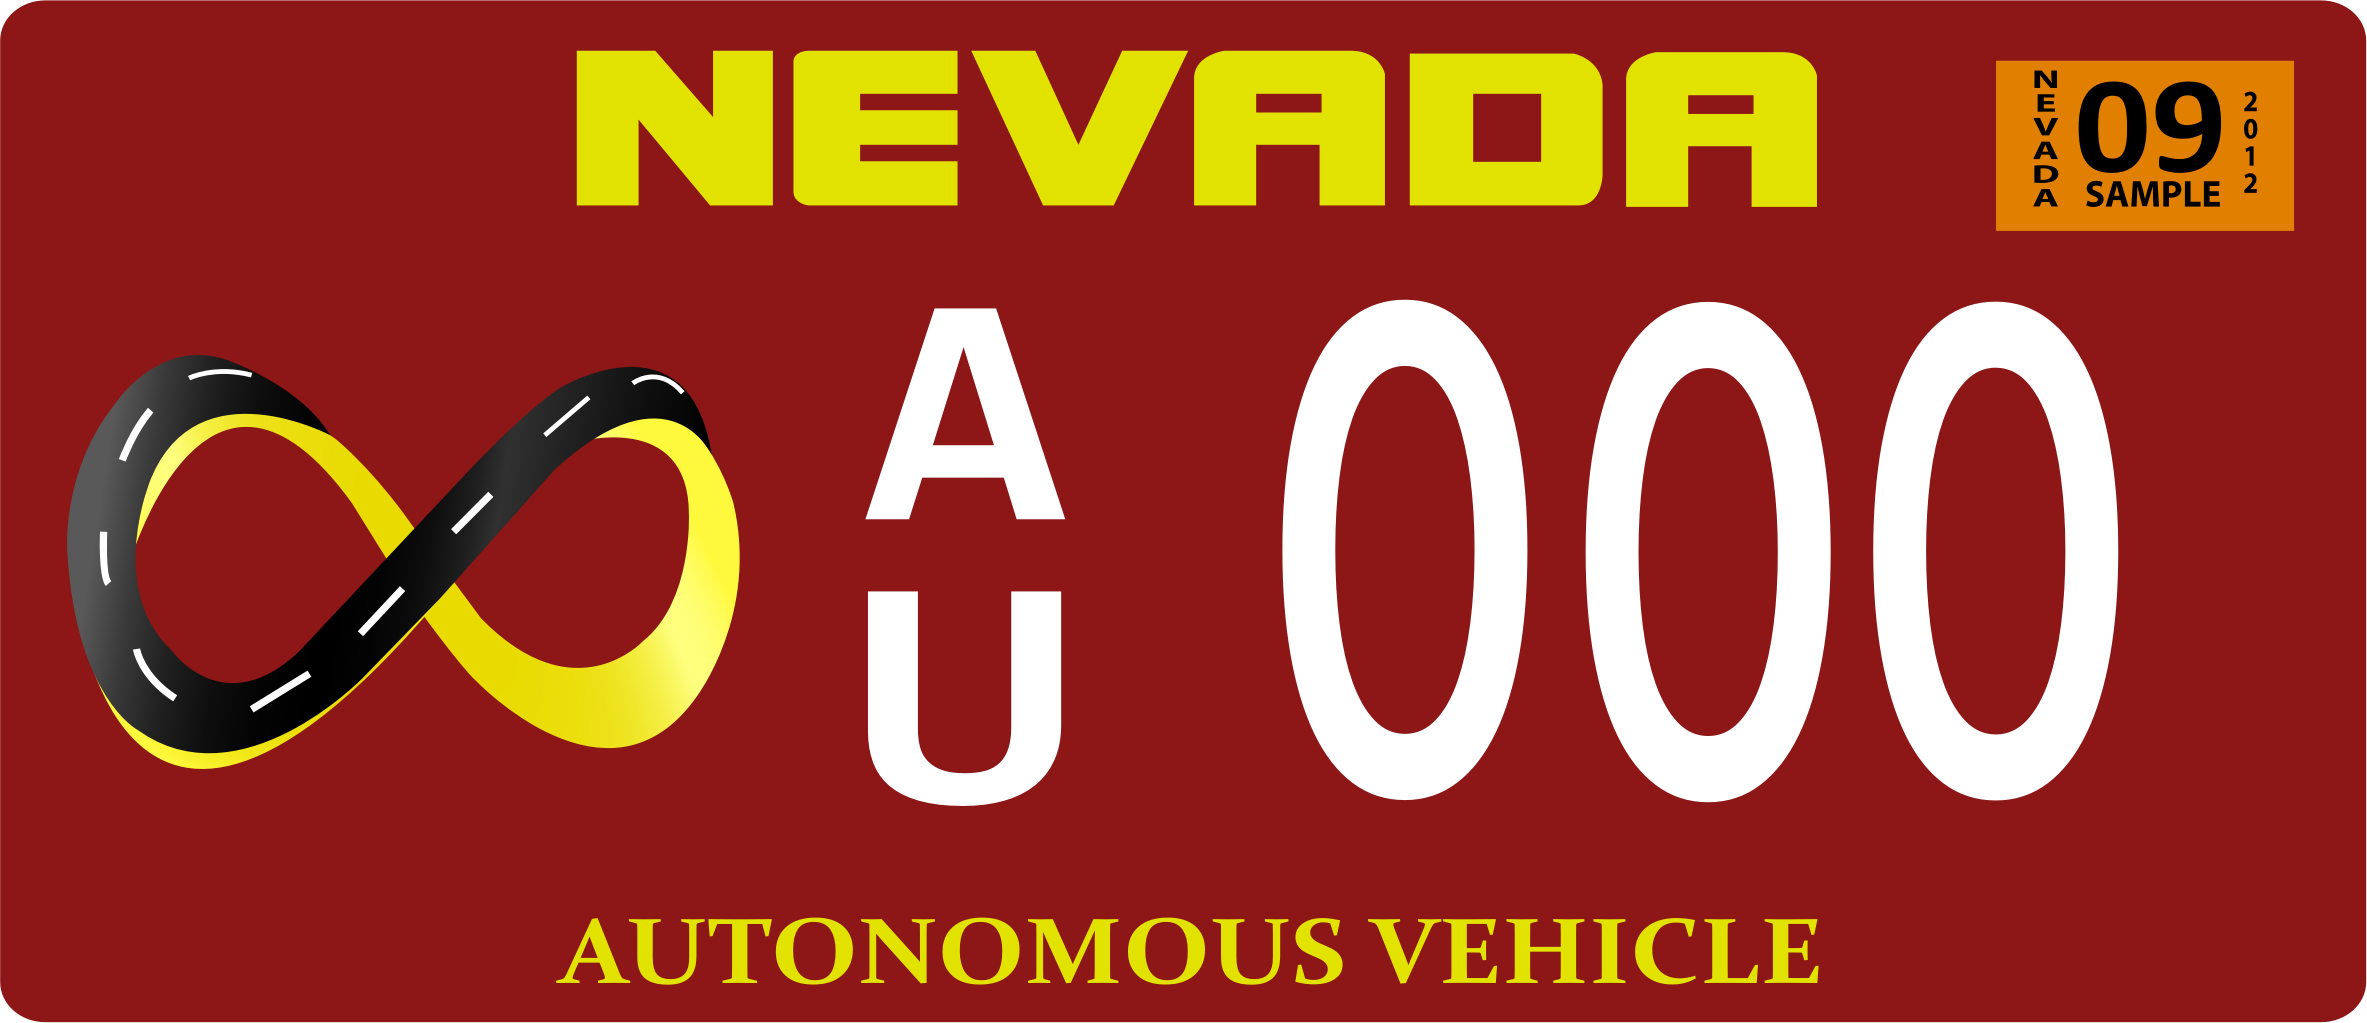 Vehicle Registration Plate by Gushchin